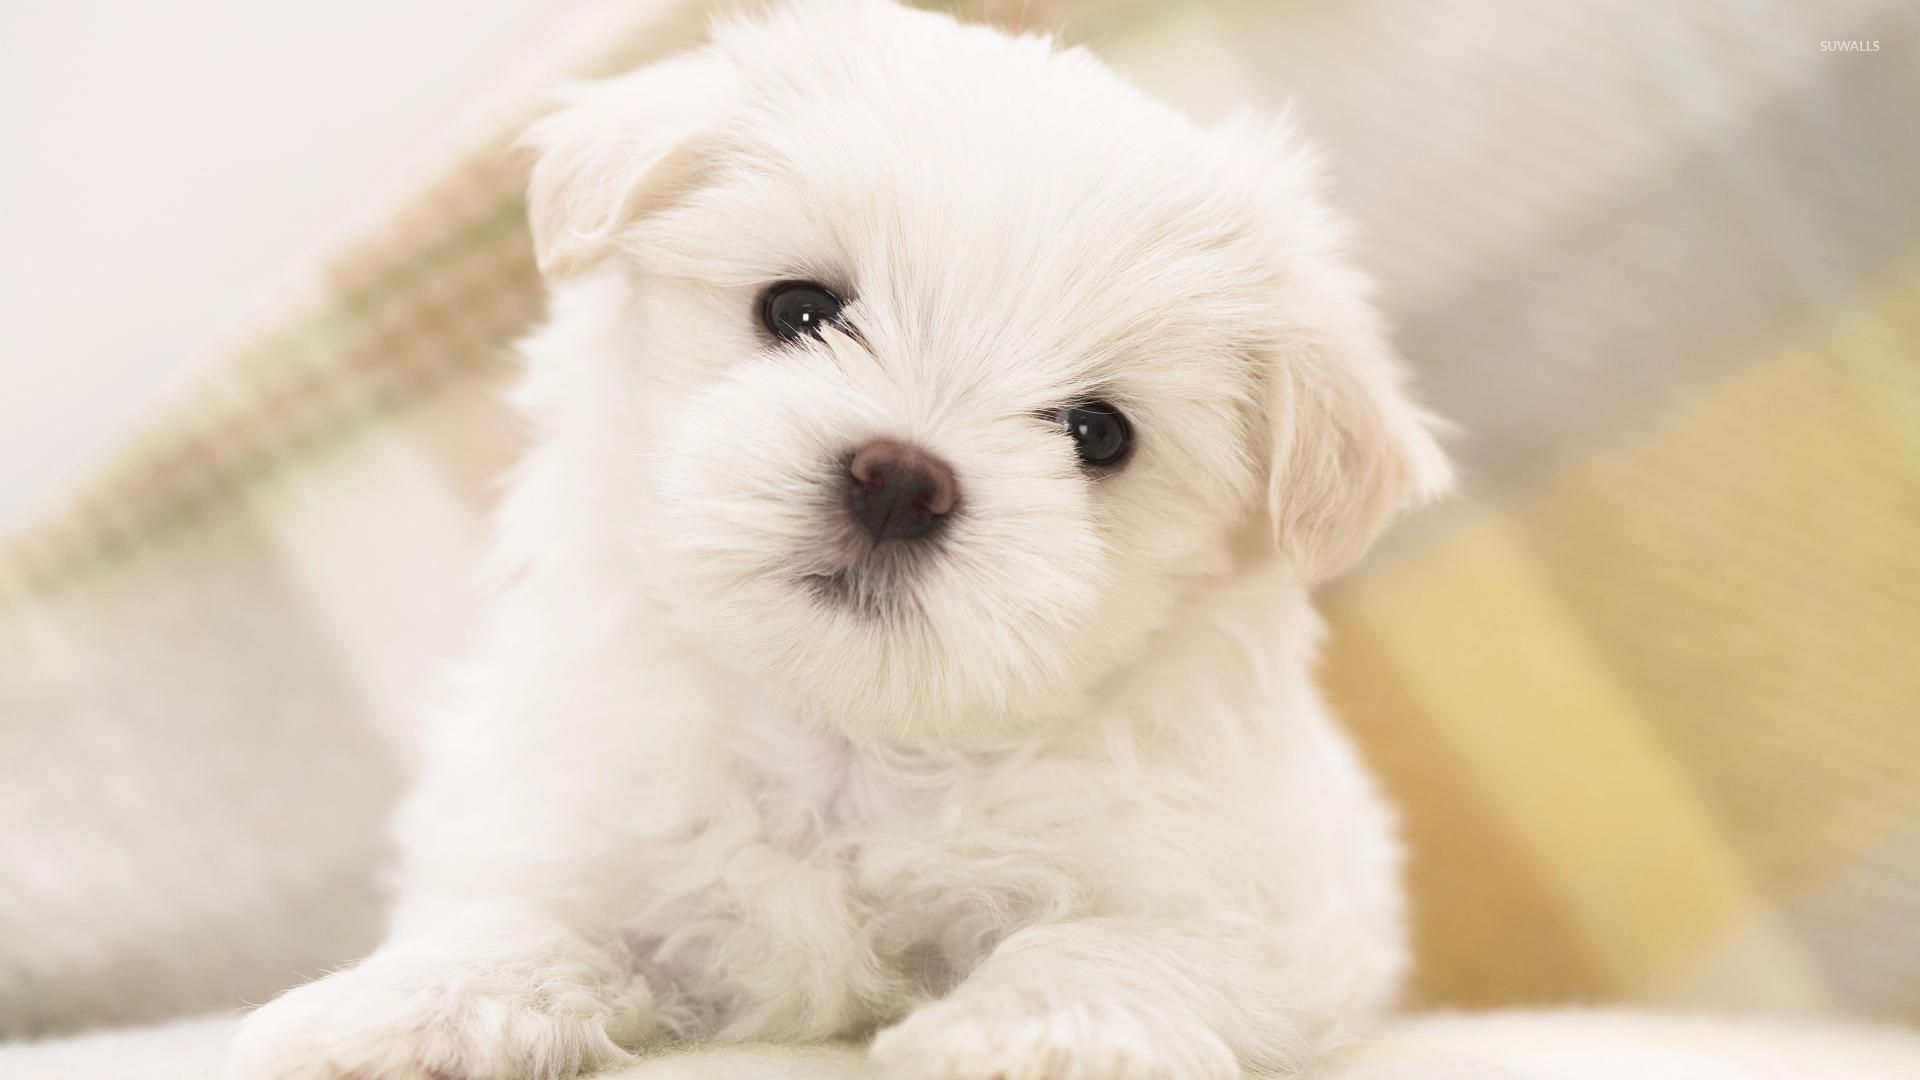 Cute white fluffy puppy with black eyes wallpaper Animal